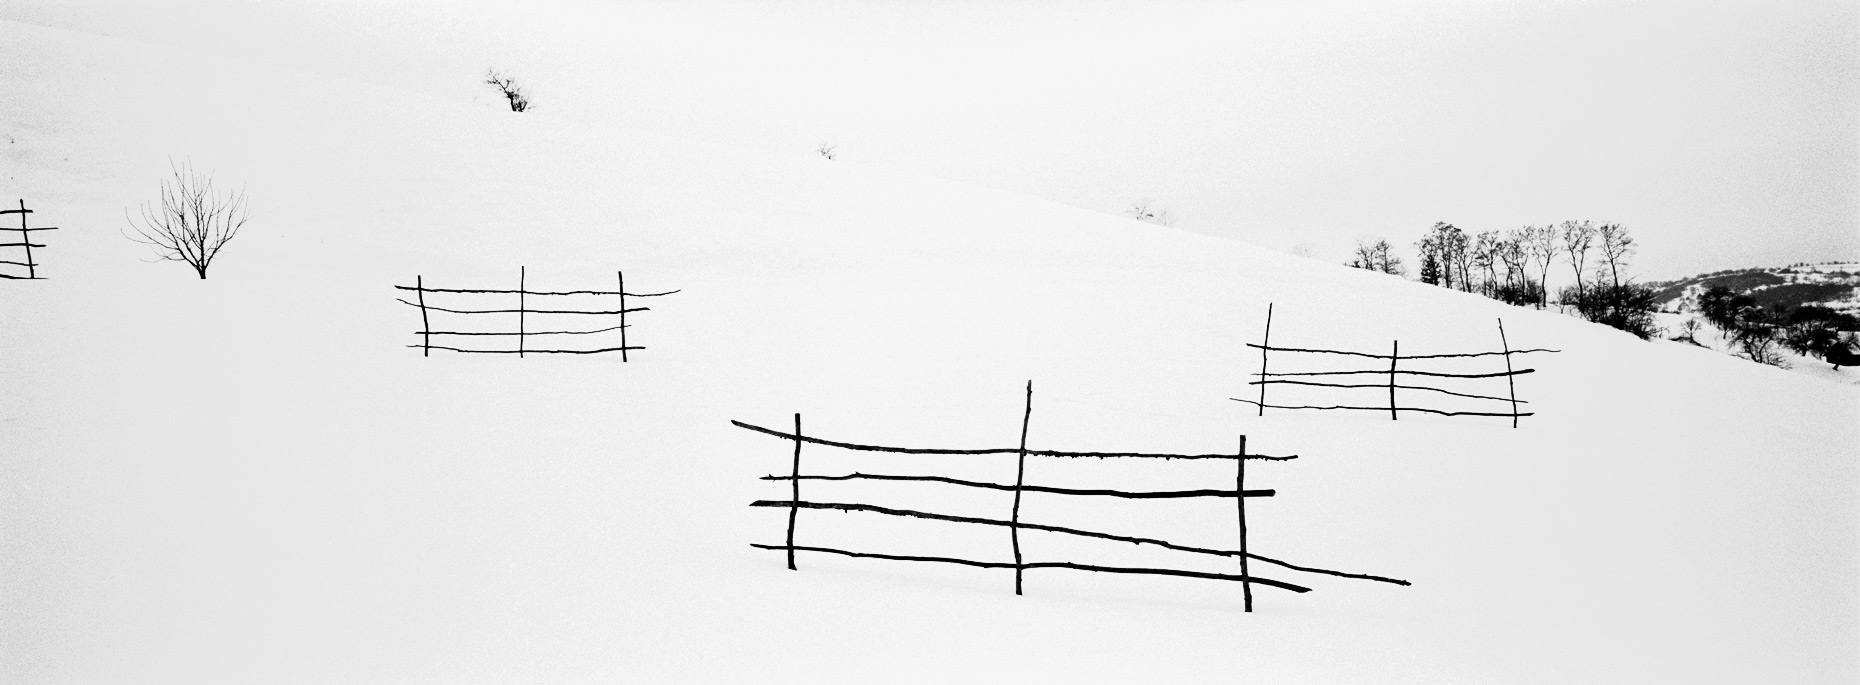 003A_Ellicson_2003_Winter_Hay_Rack_Panoramic